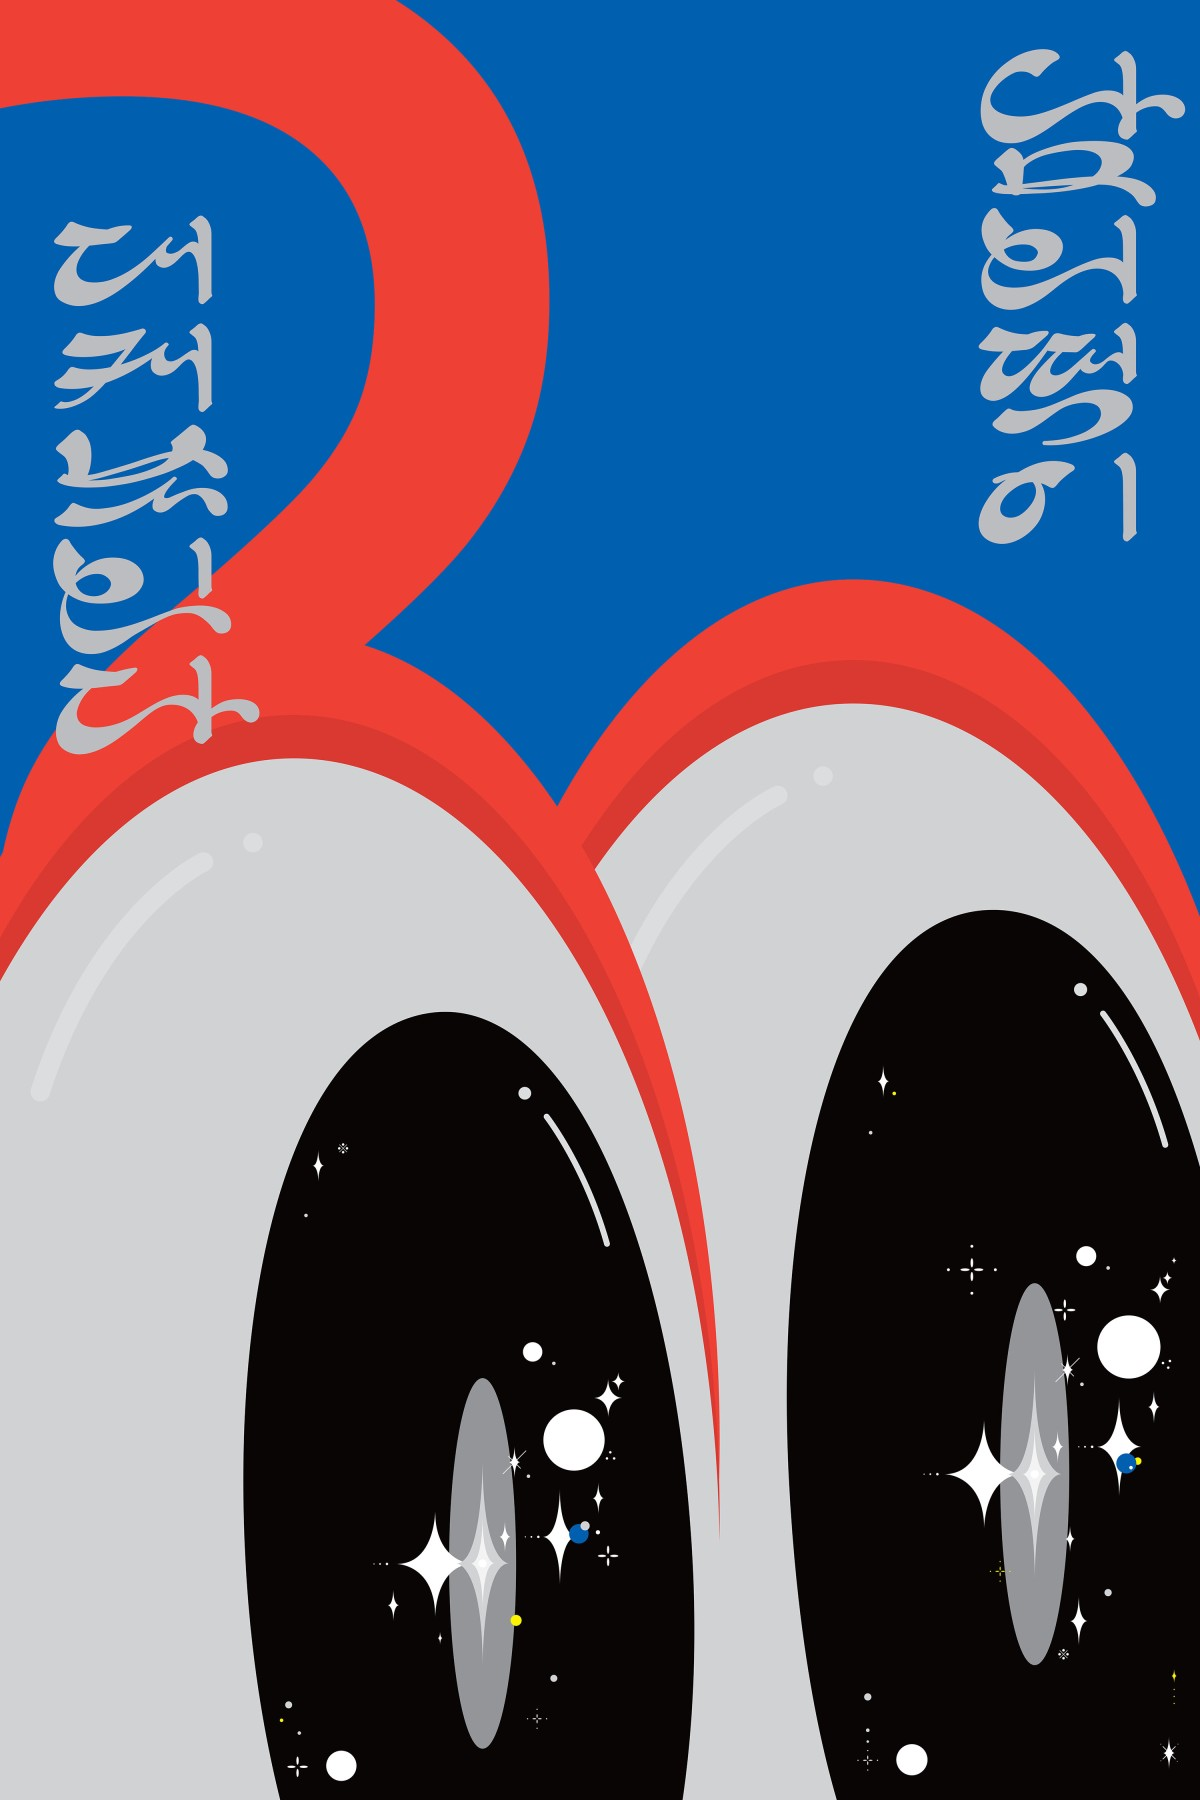 New Exhibit at Korean Cultural Center Uses Typography to Examine Common Ground